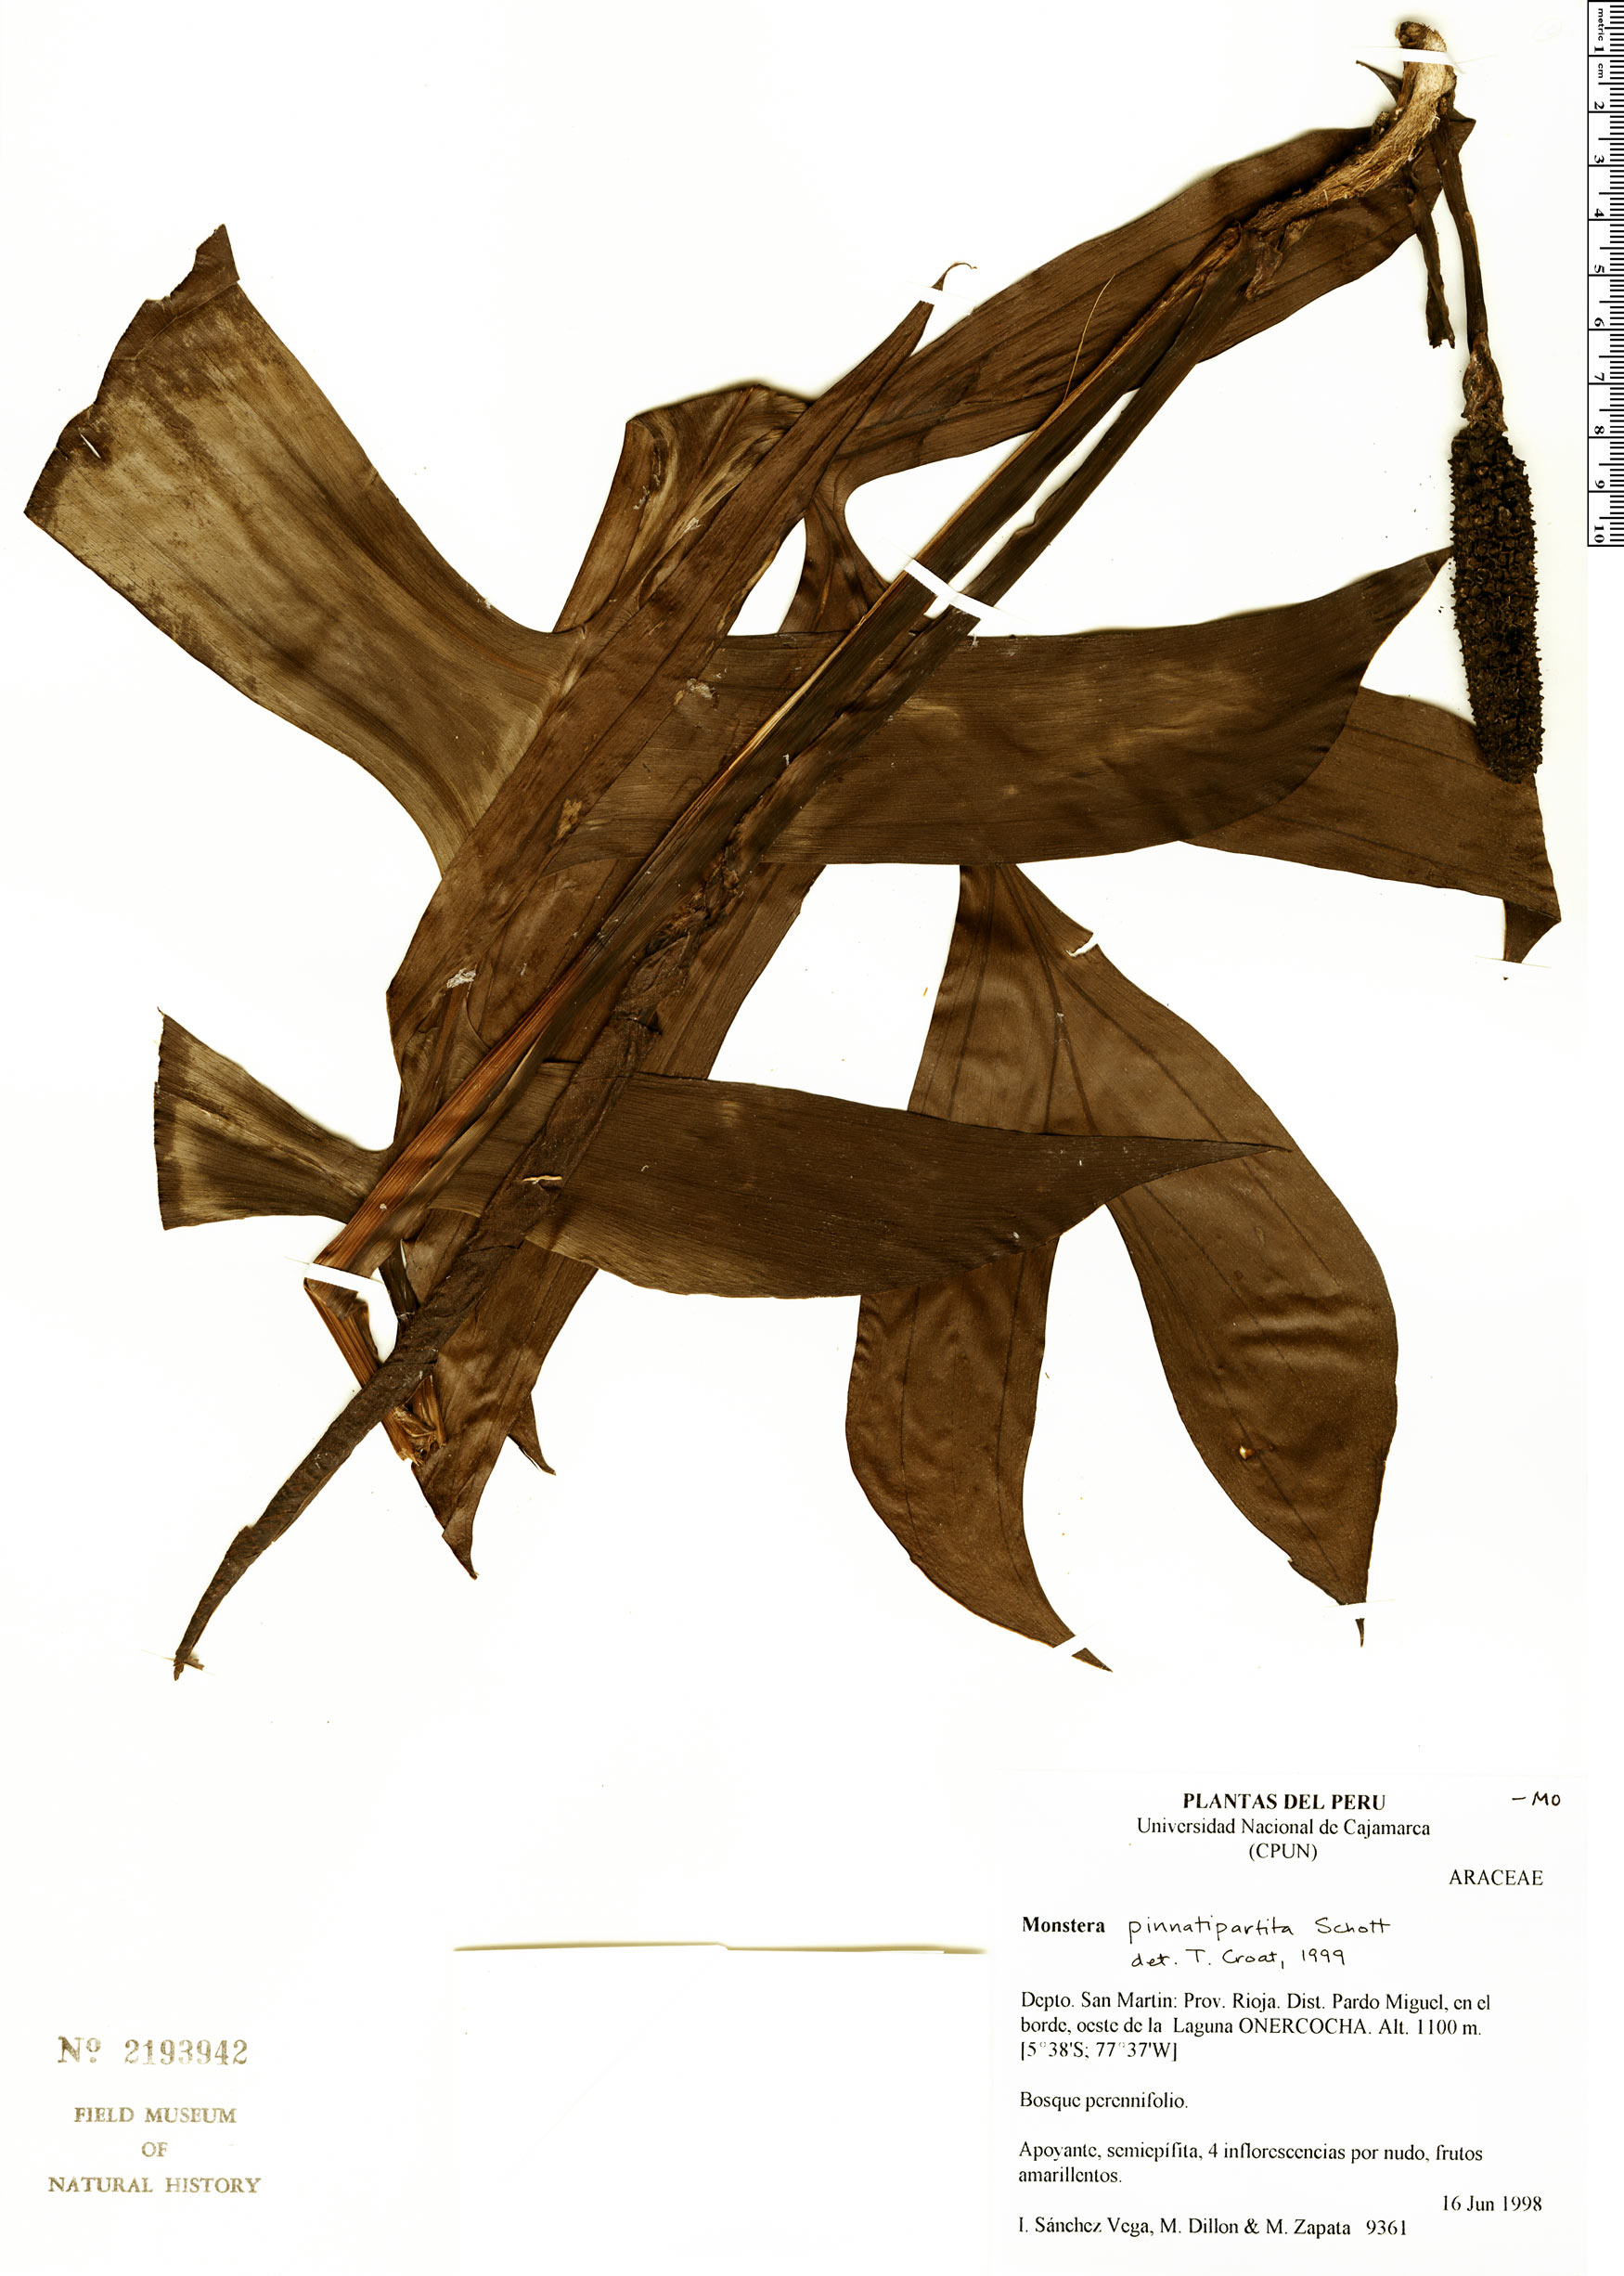 Specimen: Monstera pinnatipartita